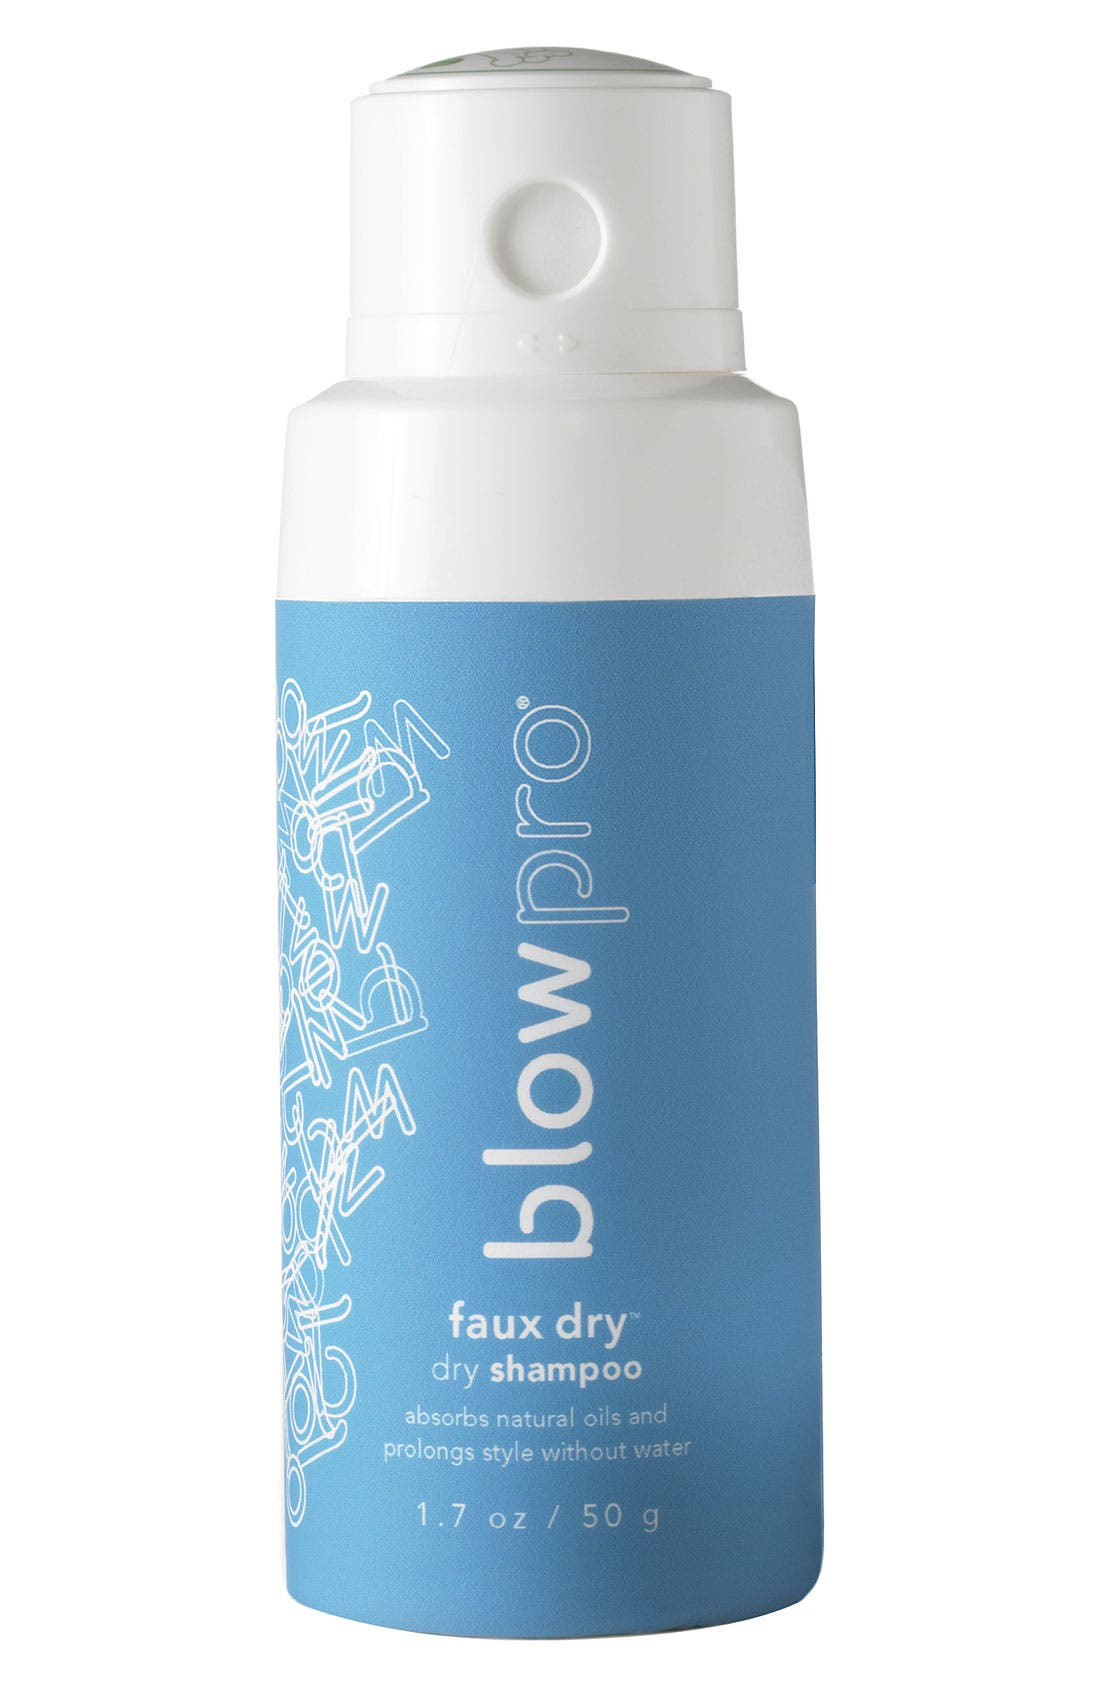 blowpro® 'faux dry™' dry shampoo